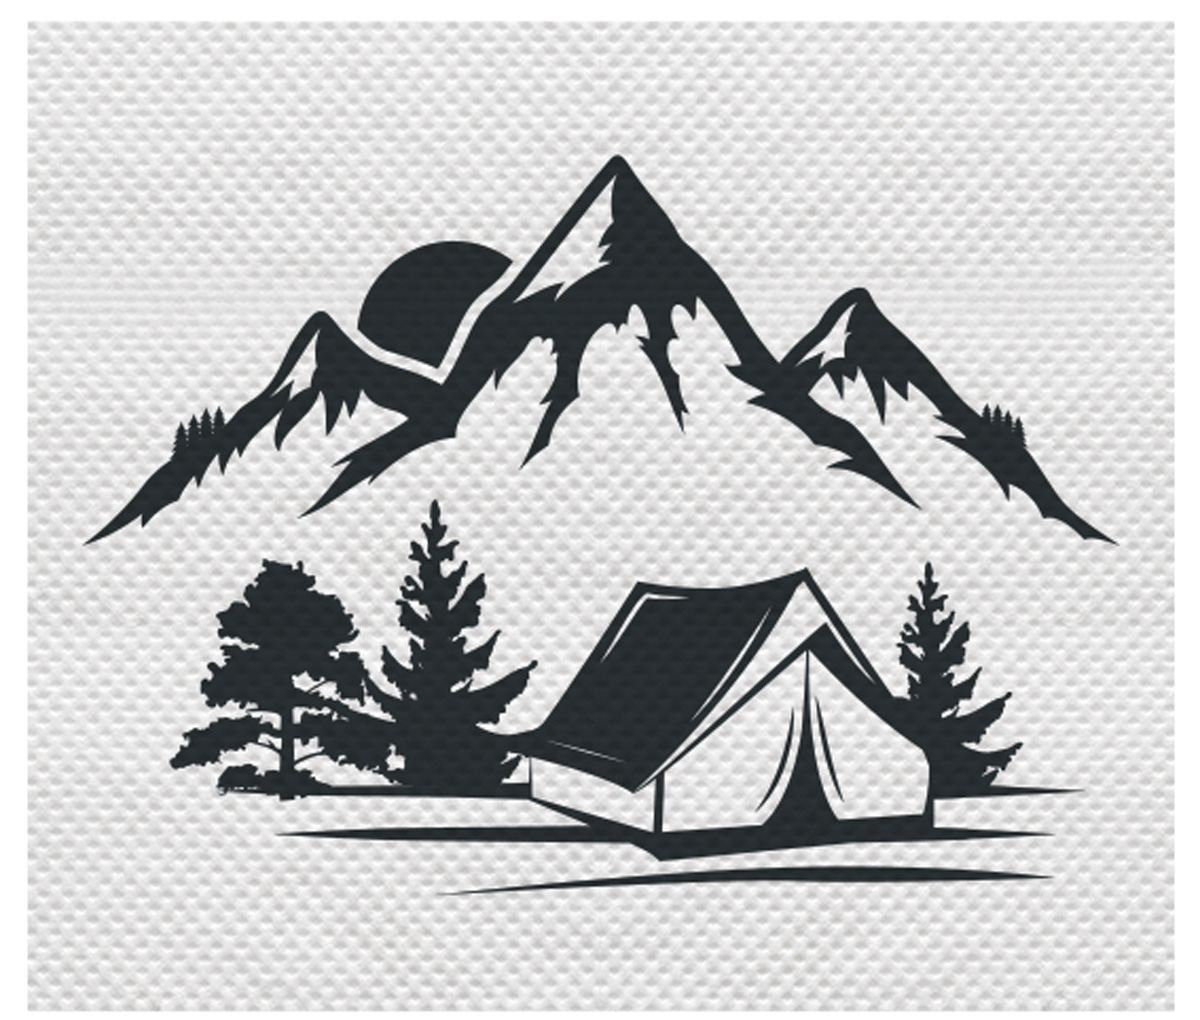 Graphic Design for Pikes Peak Apparel by Mila.